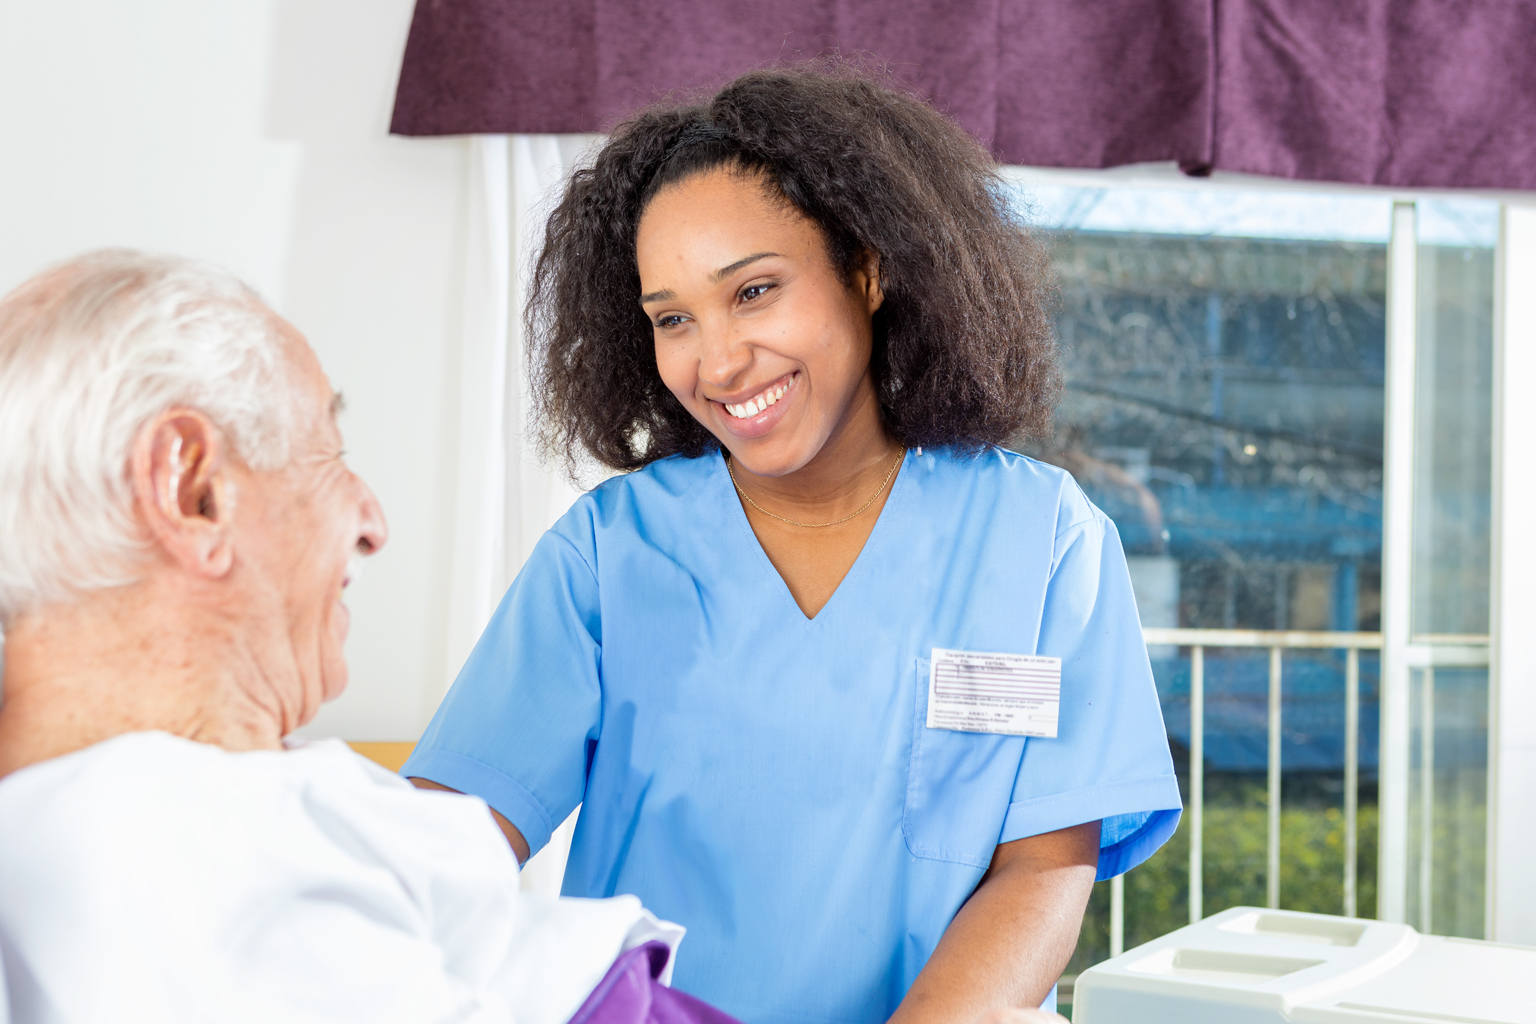 Nurse smiling at patient laying in hospital bed